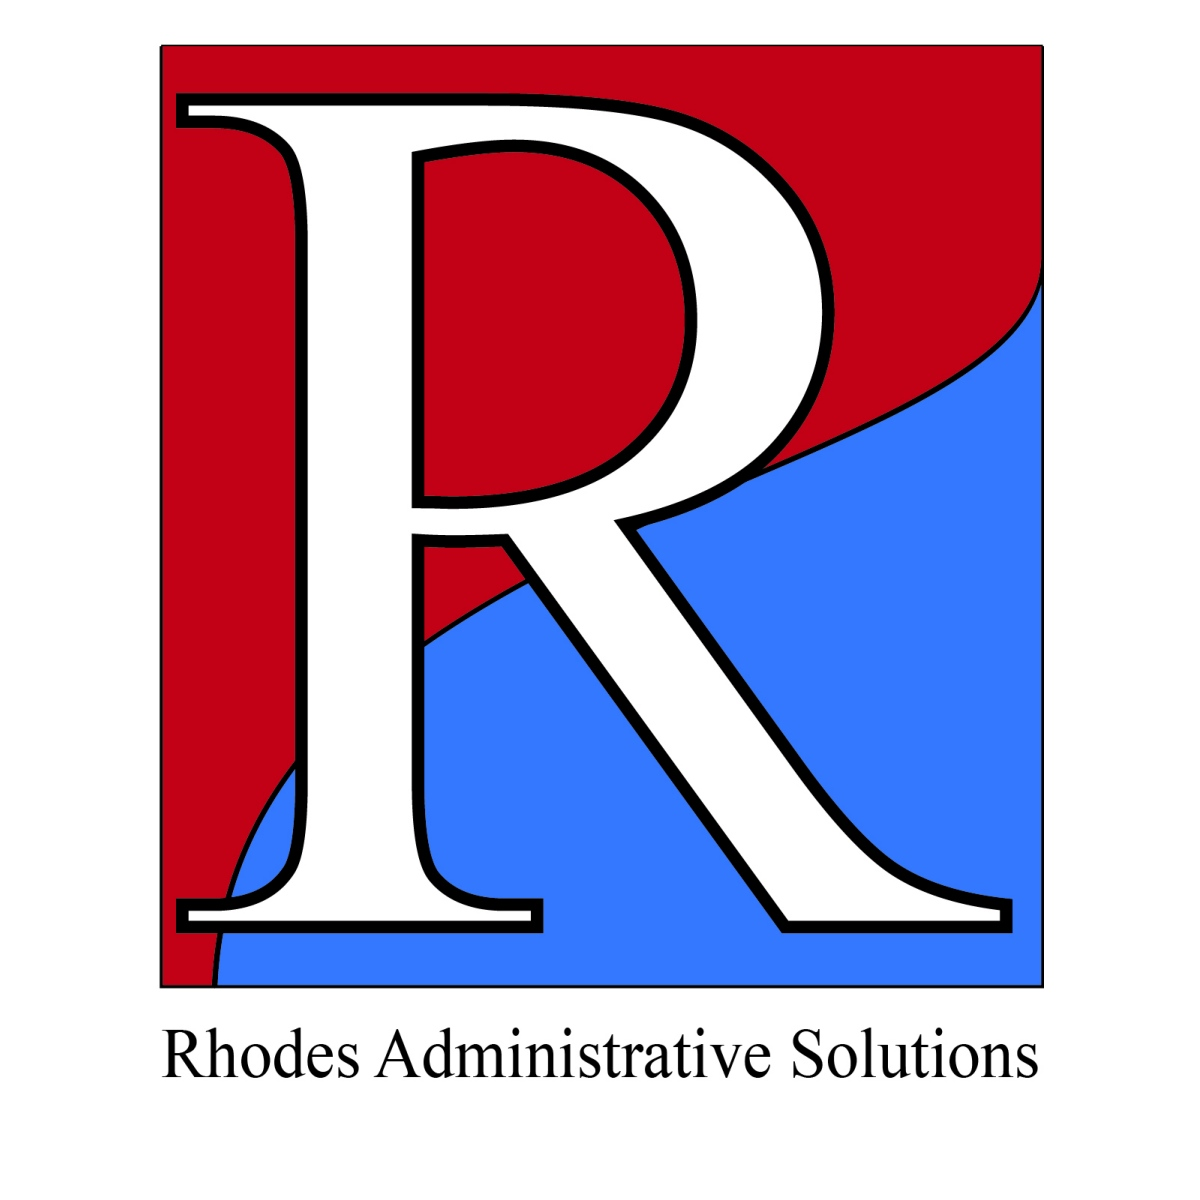 Logo Design by LLP7 - Entry No. 47 in the Logo Design Contest Rhodes Administrative Solutions.